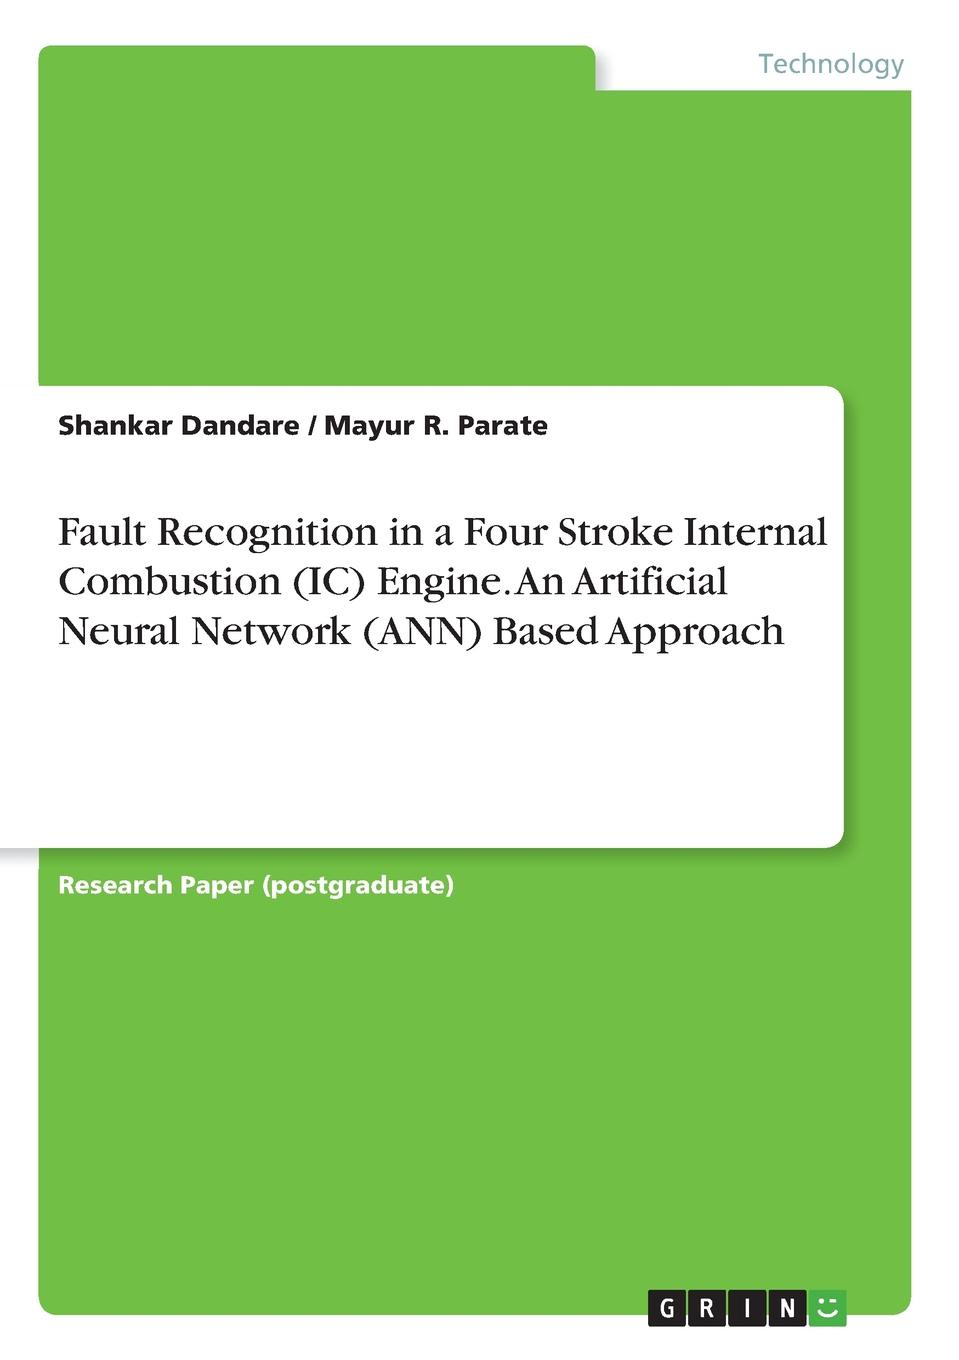 Shankar Dandare, Mayur R. Parate Fault Recognition in a Four Stroke Internal Combustion (IC) Engine. An Artificial Neural Network (ANN) Based Approach stator line faults diagnosis of vsi fed im drive using fuzzylogic